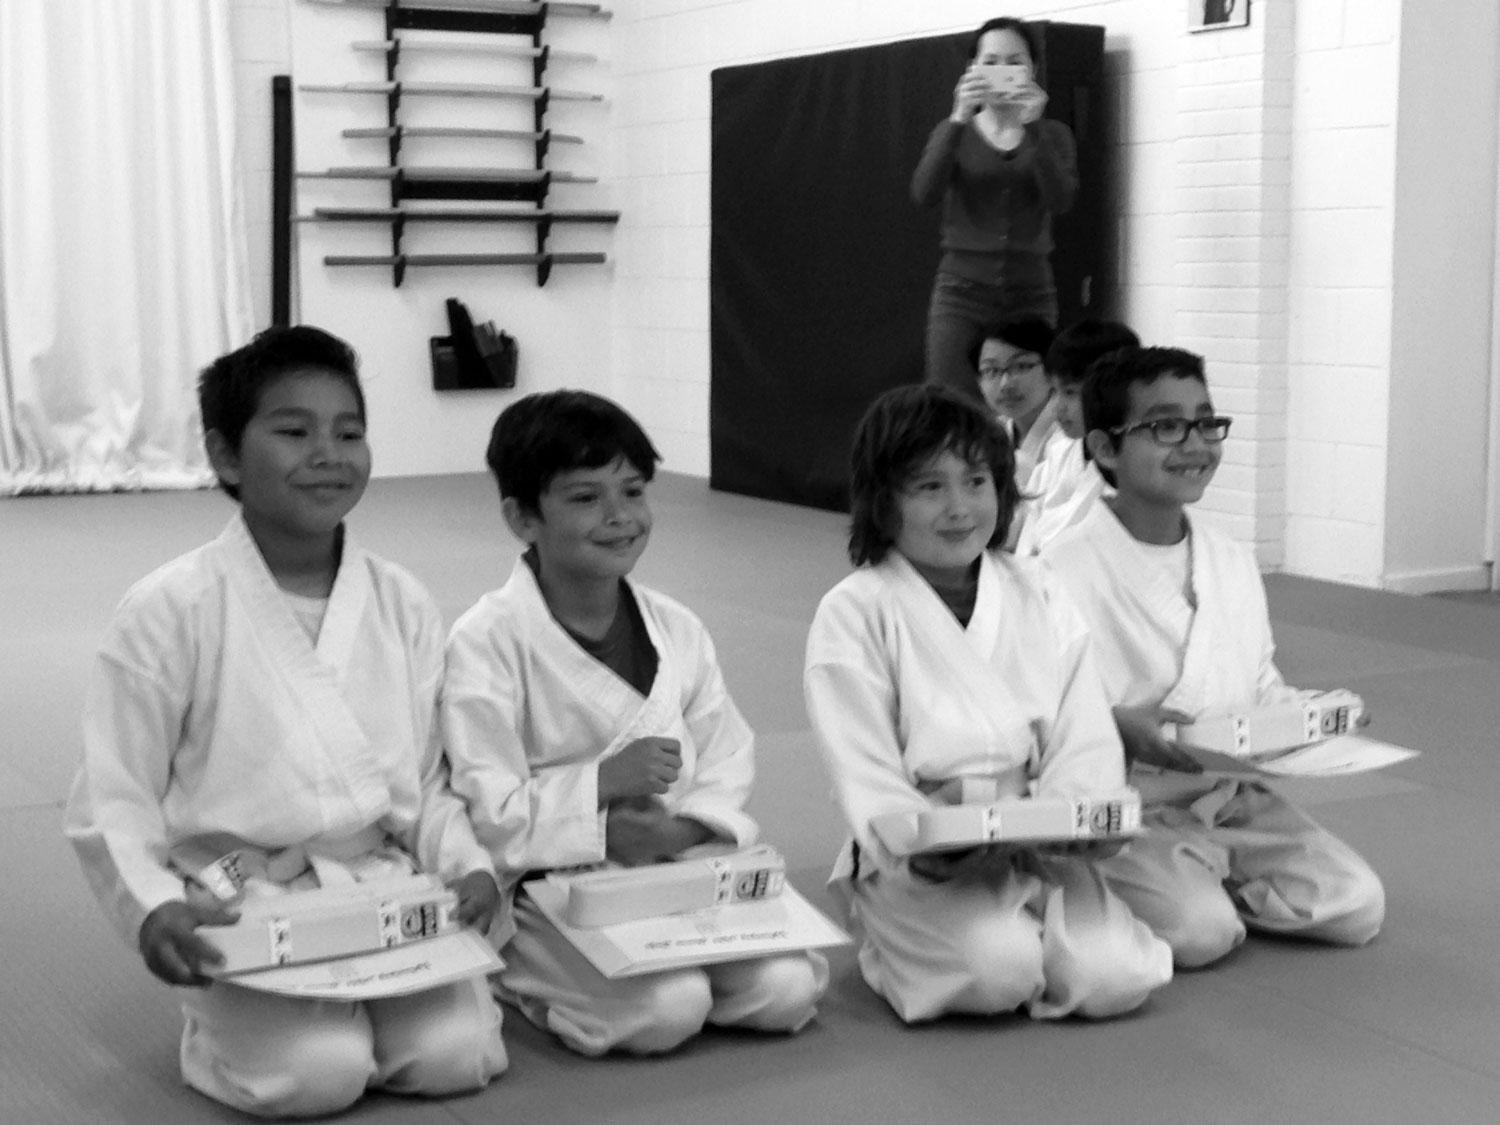 Proud students after completing a successful Kyu test.